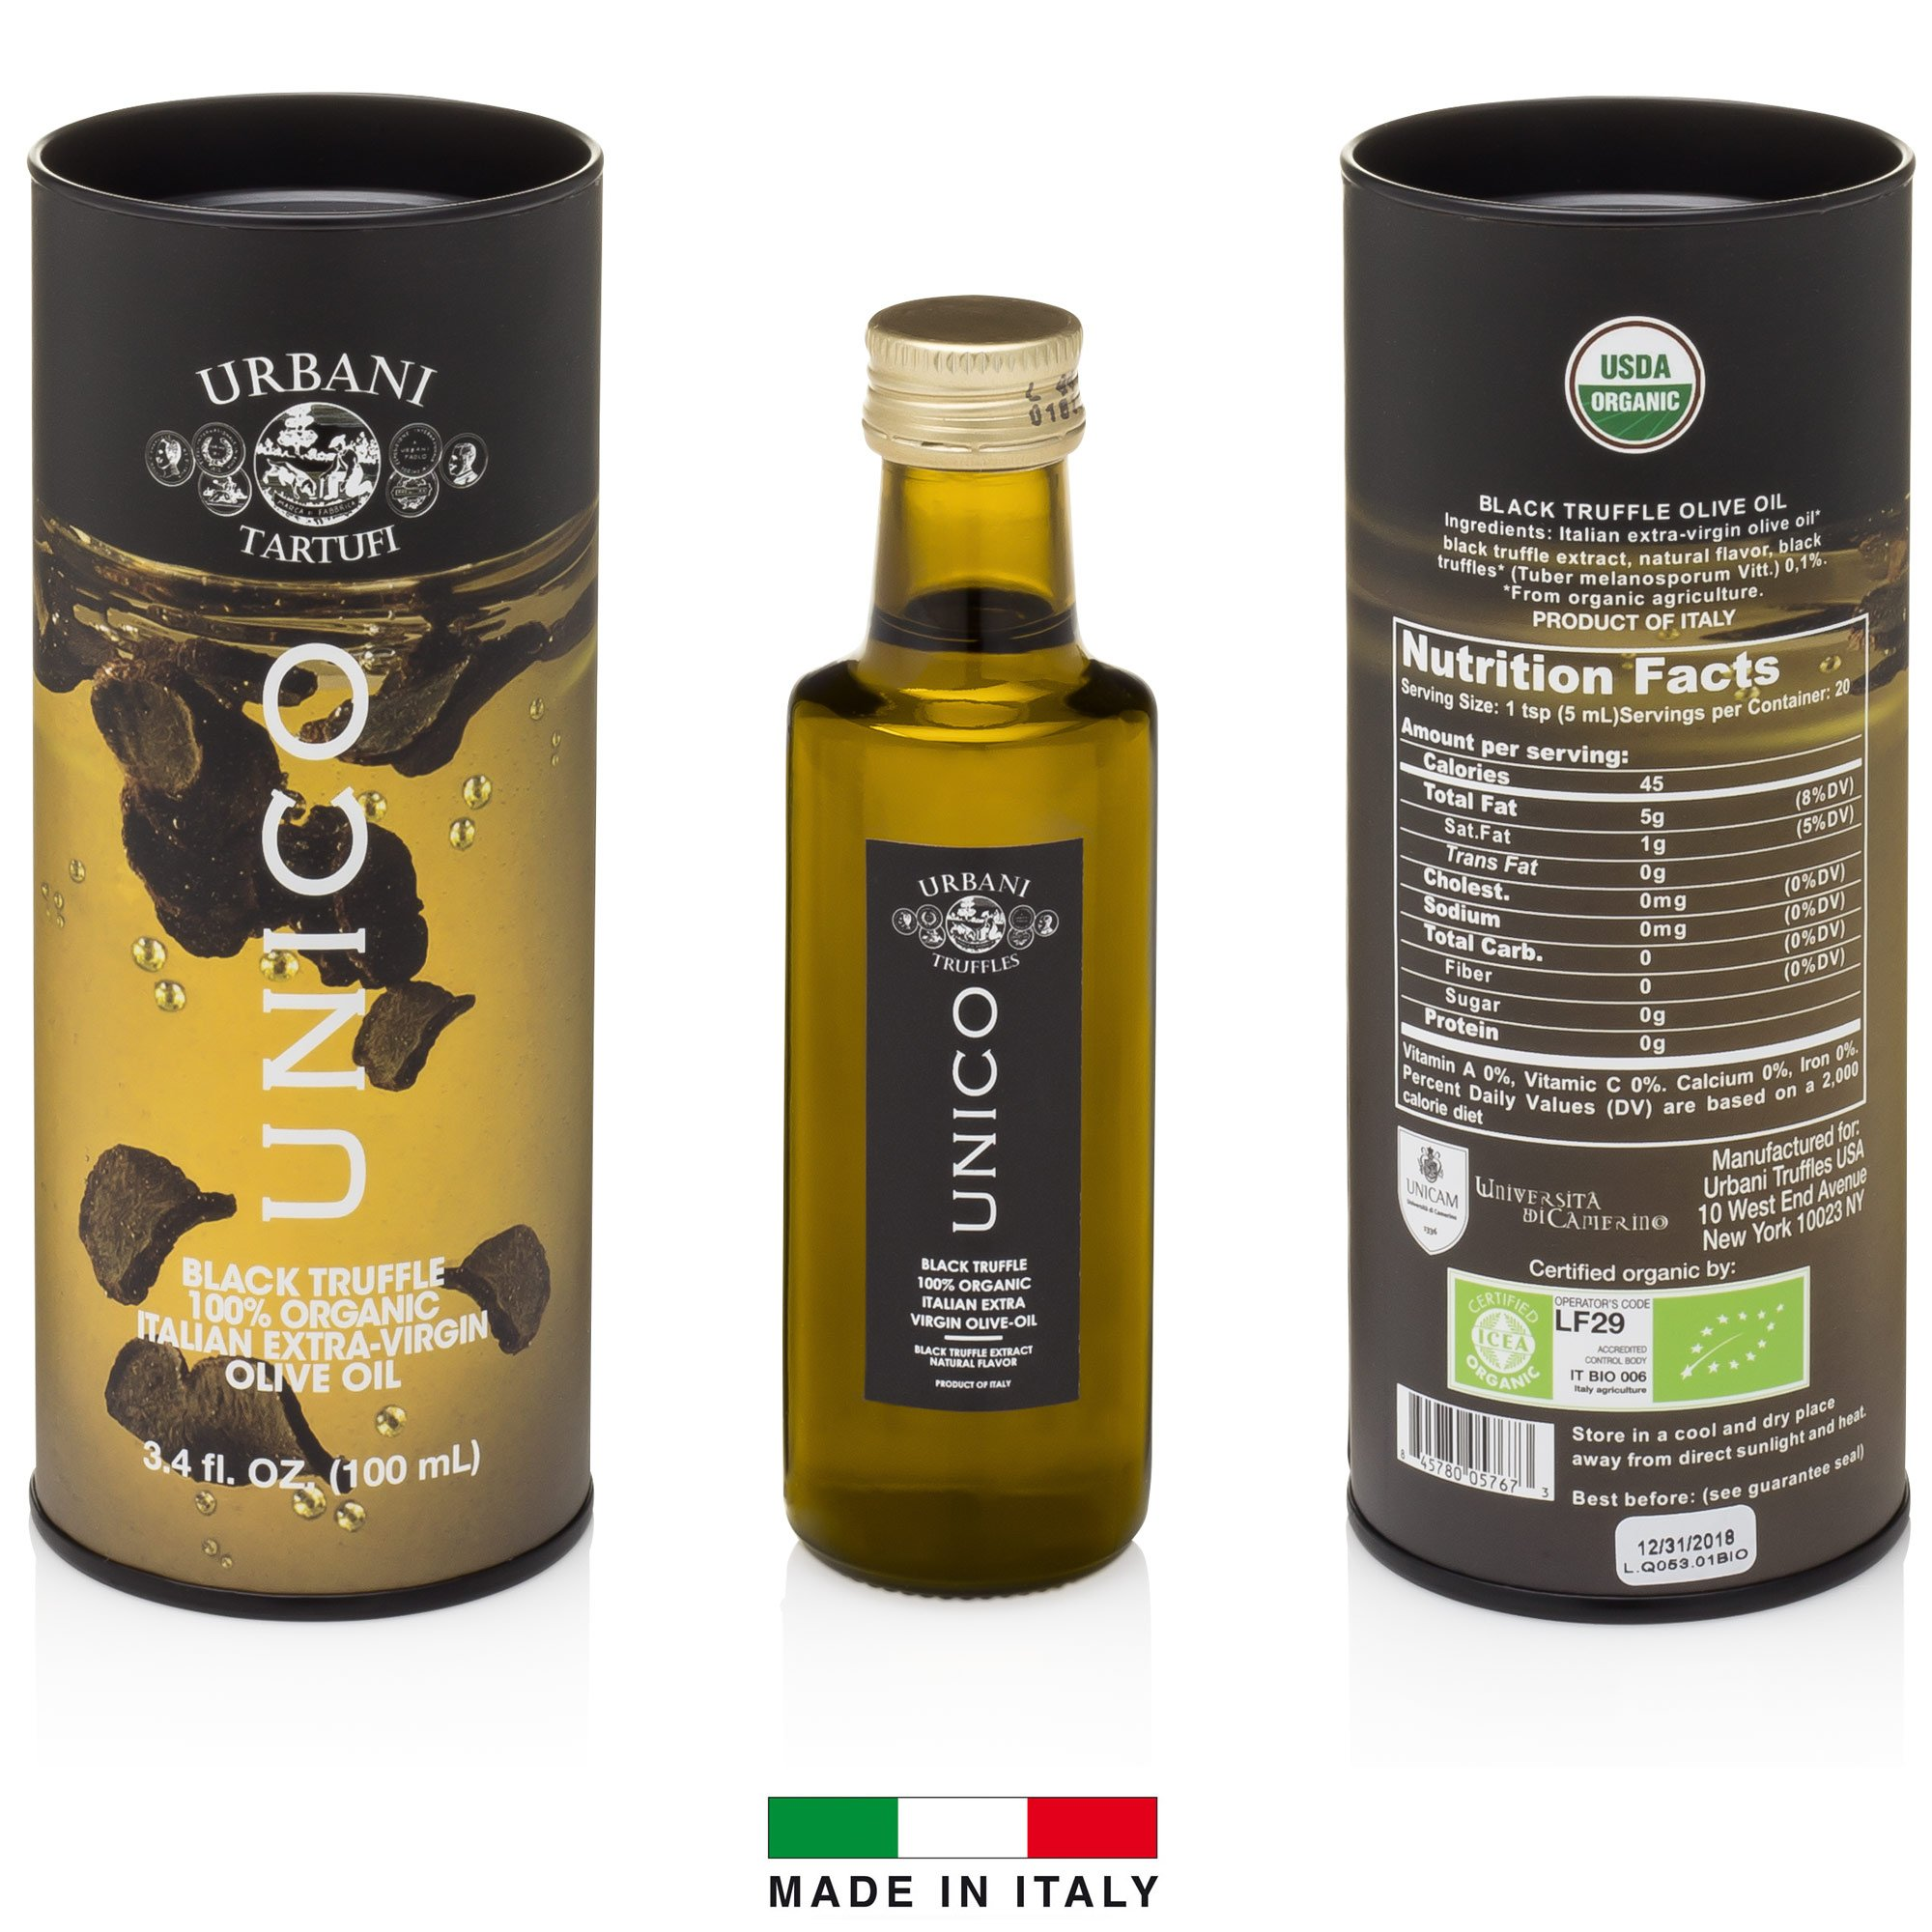 Italian Black Truffle Extra Virgin Olive Oil - 3.4 Oz - by Urbani Truffles. Organic Truffle Oil 100% Made In Italy Without Chemicals And With Real Truffle Pieces Inside The Bottle. No Artificial Aroma by Urbani Truffles